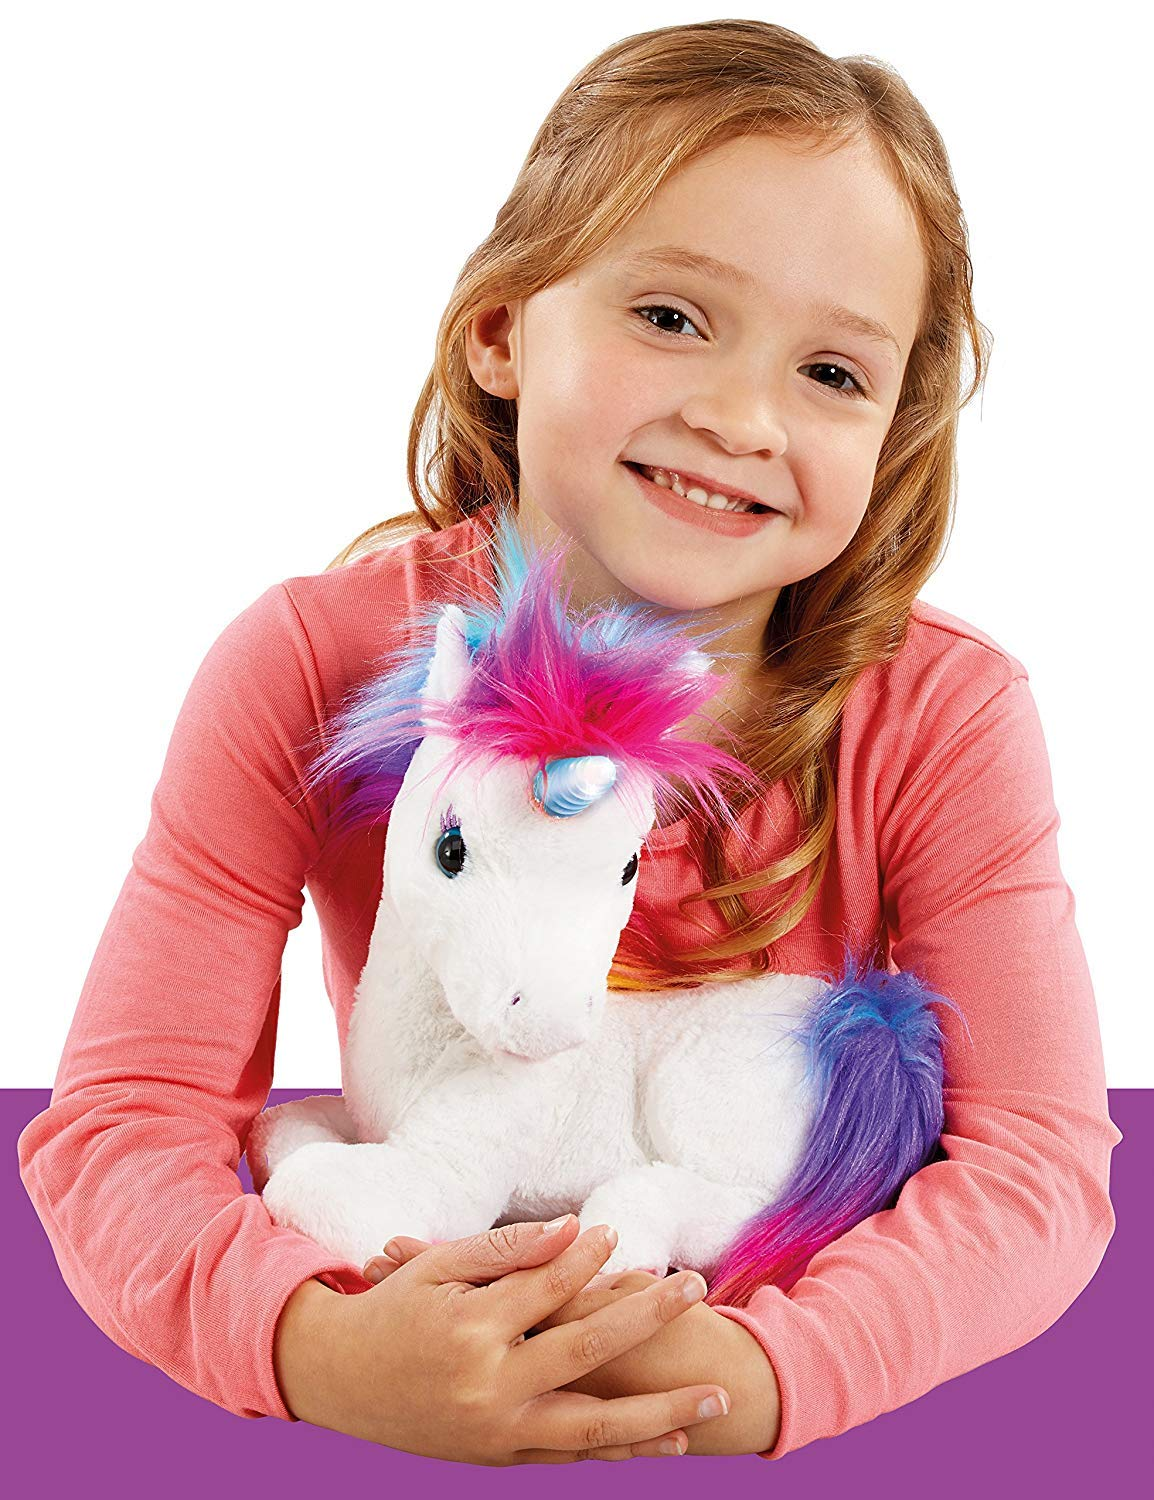 AniMagic Rainbow - My Glowing Unicorn, a Soft Unicorn Plush Toy with Glowing Horn and Unicorn Sounds 6